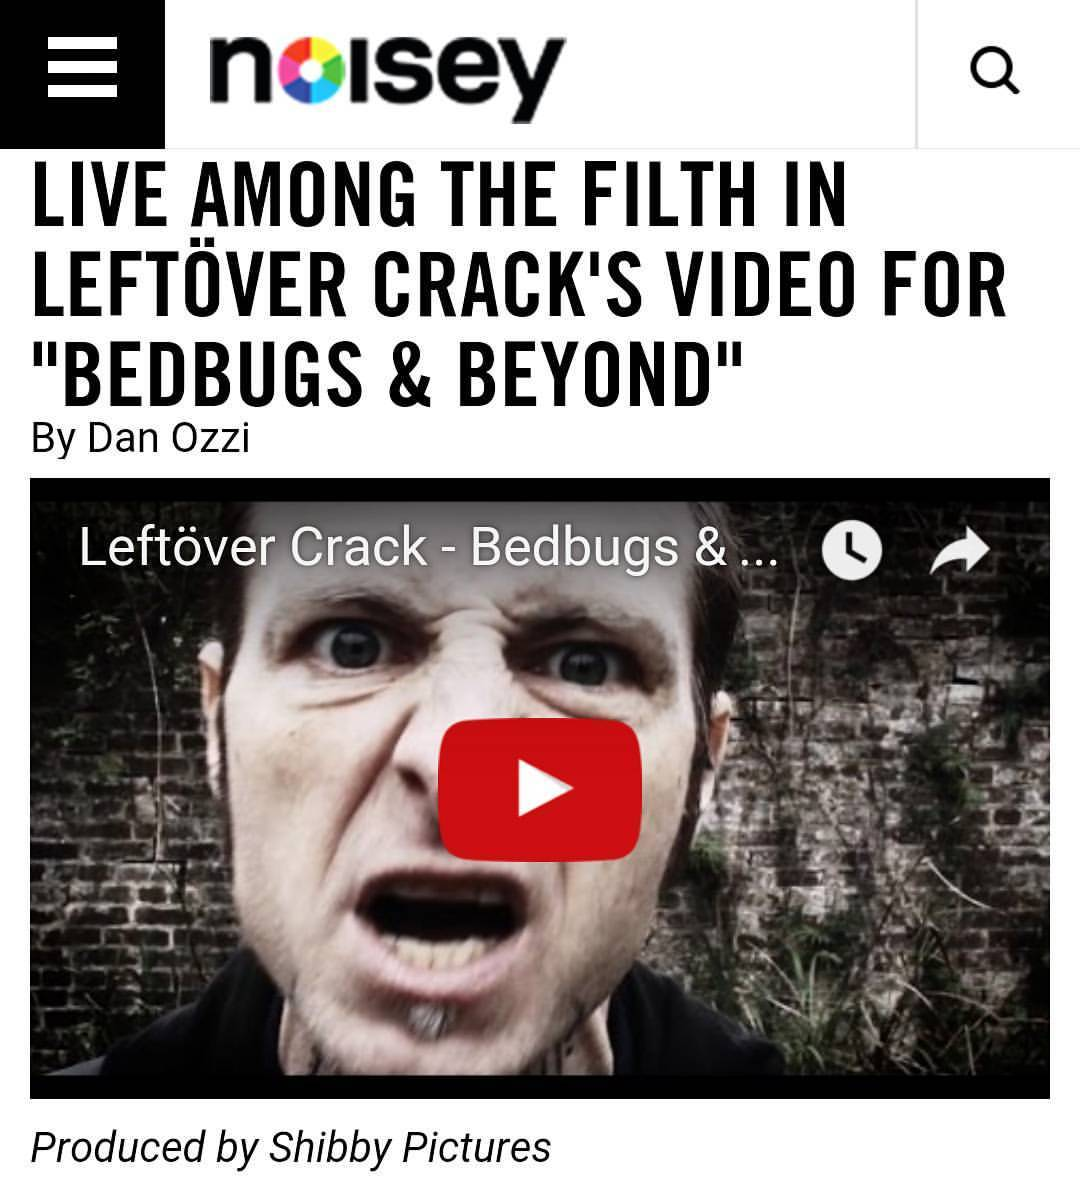 Yooo Noisey just premiered my new music video I made with Leftover Crack and Days N Daze. It was one of my favorite video shoots I've ever done. A huge thanks to Sturgeon for the amazing opportunity to work with two of my favorite bands of all time!